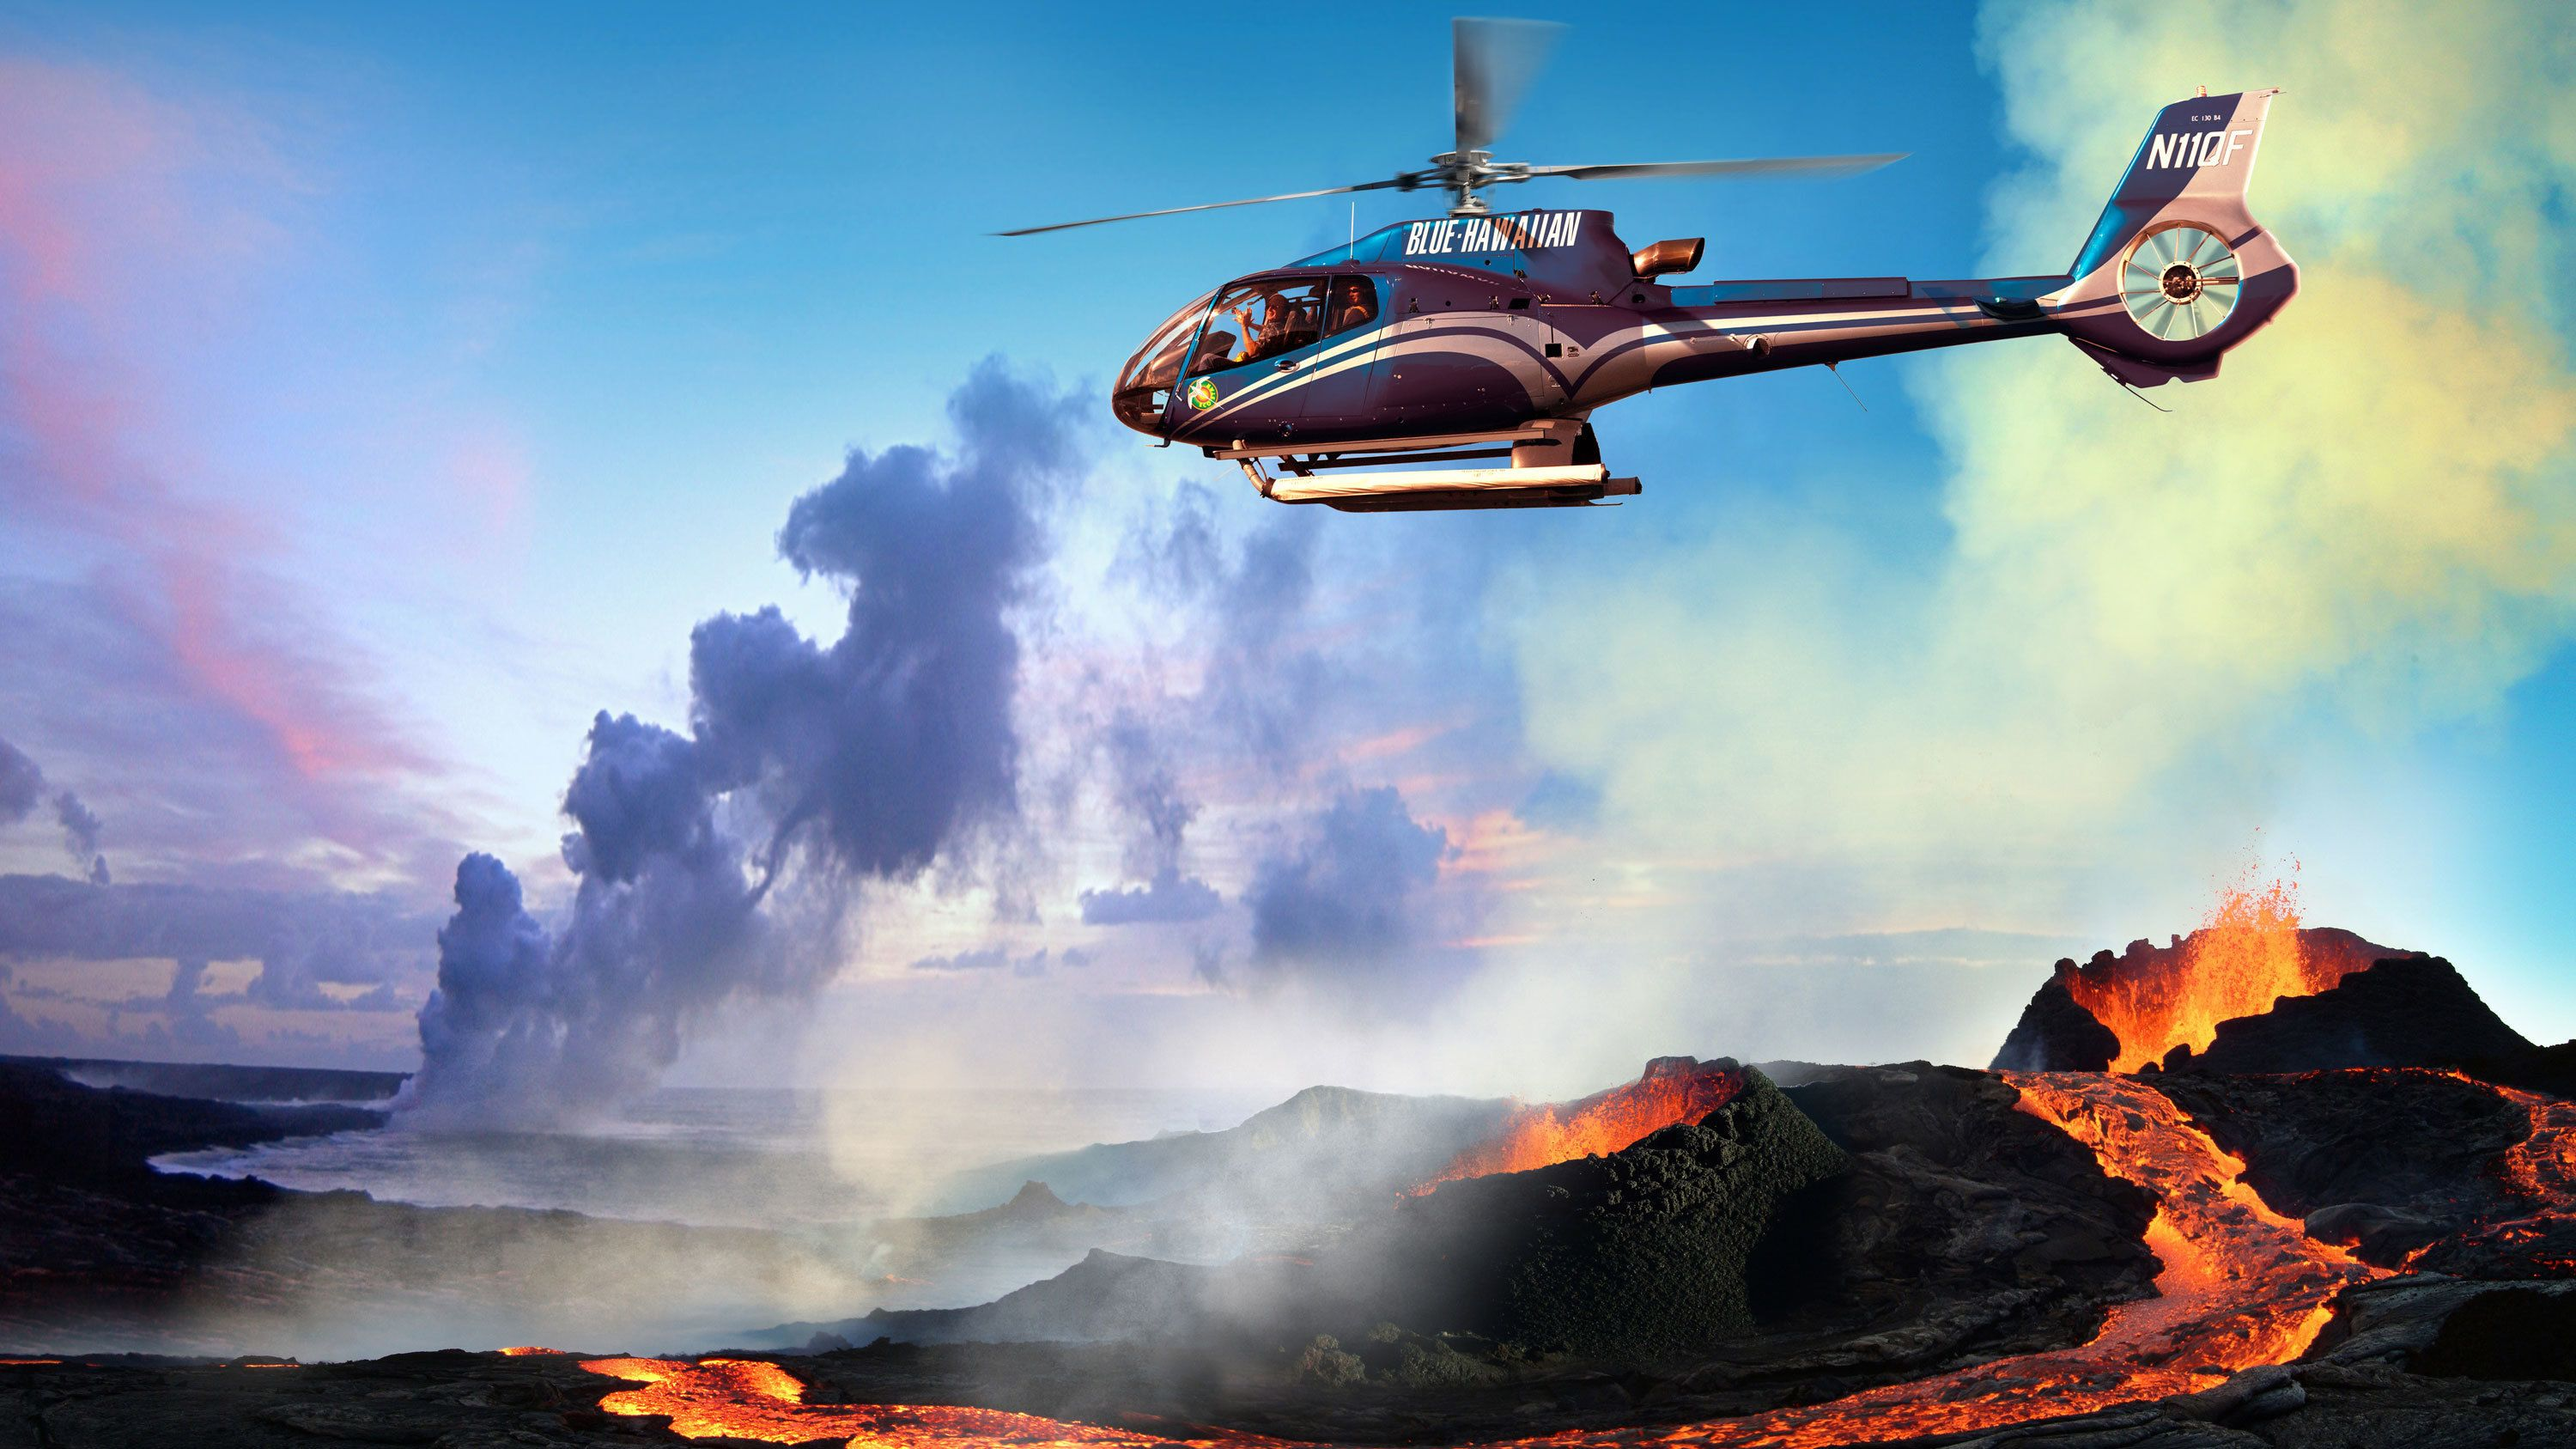 Helicopter flying near mouth of erupting volcano